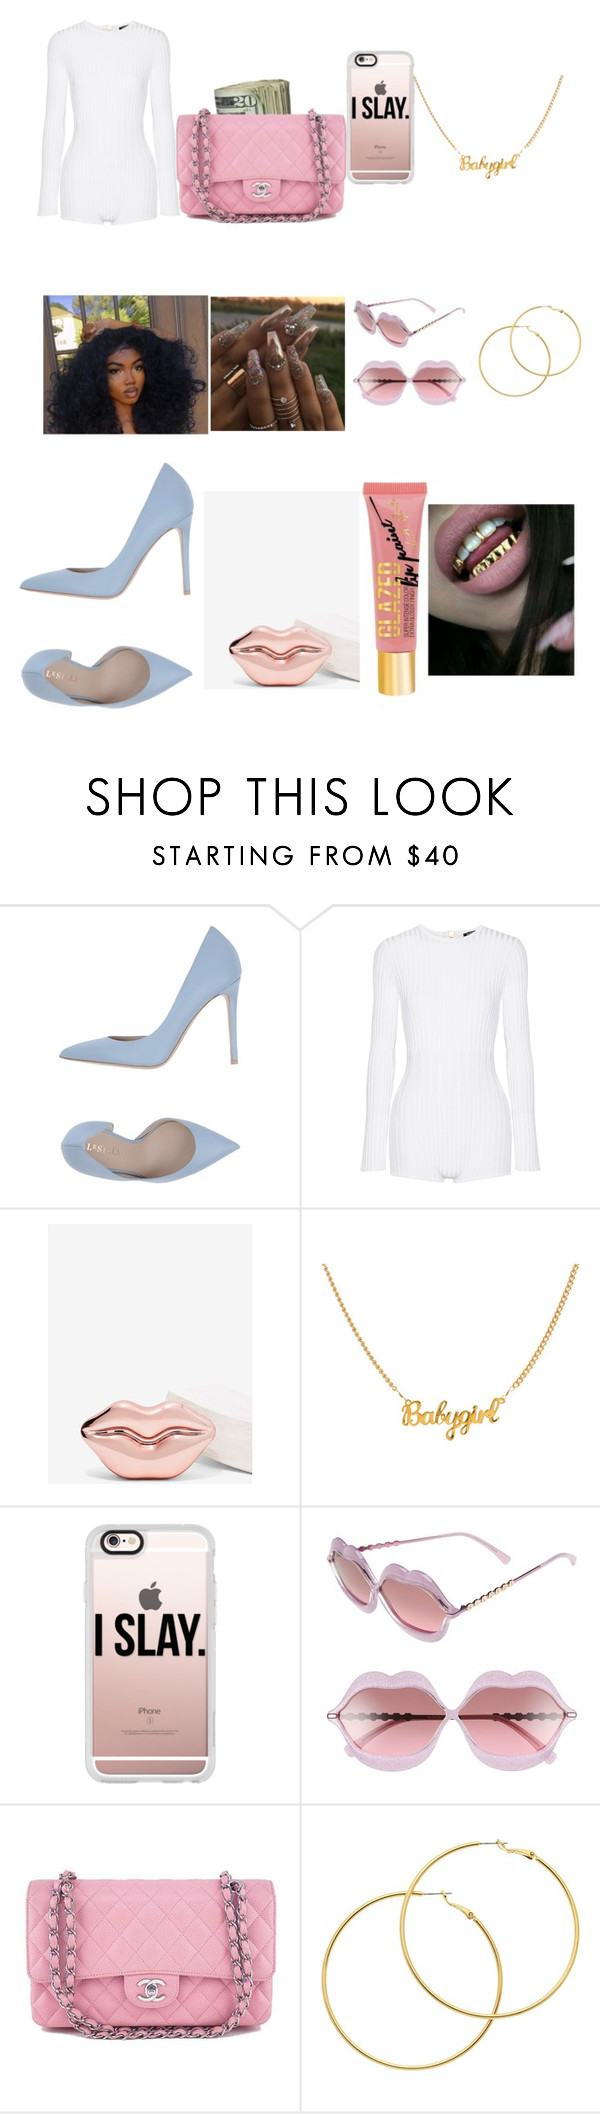 """""""Untitled #92"""" by princessmarie1992 ❤ liked on Polyvore featuring Le Silla, Balmain, Casetify, Wildfox, Chanel, Melissa Odabash and Charlotte Russe"""